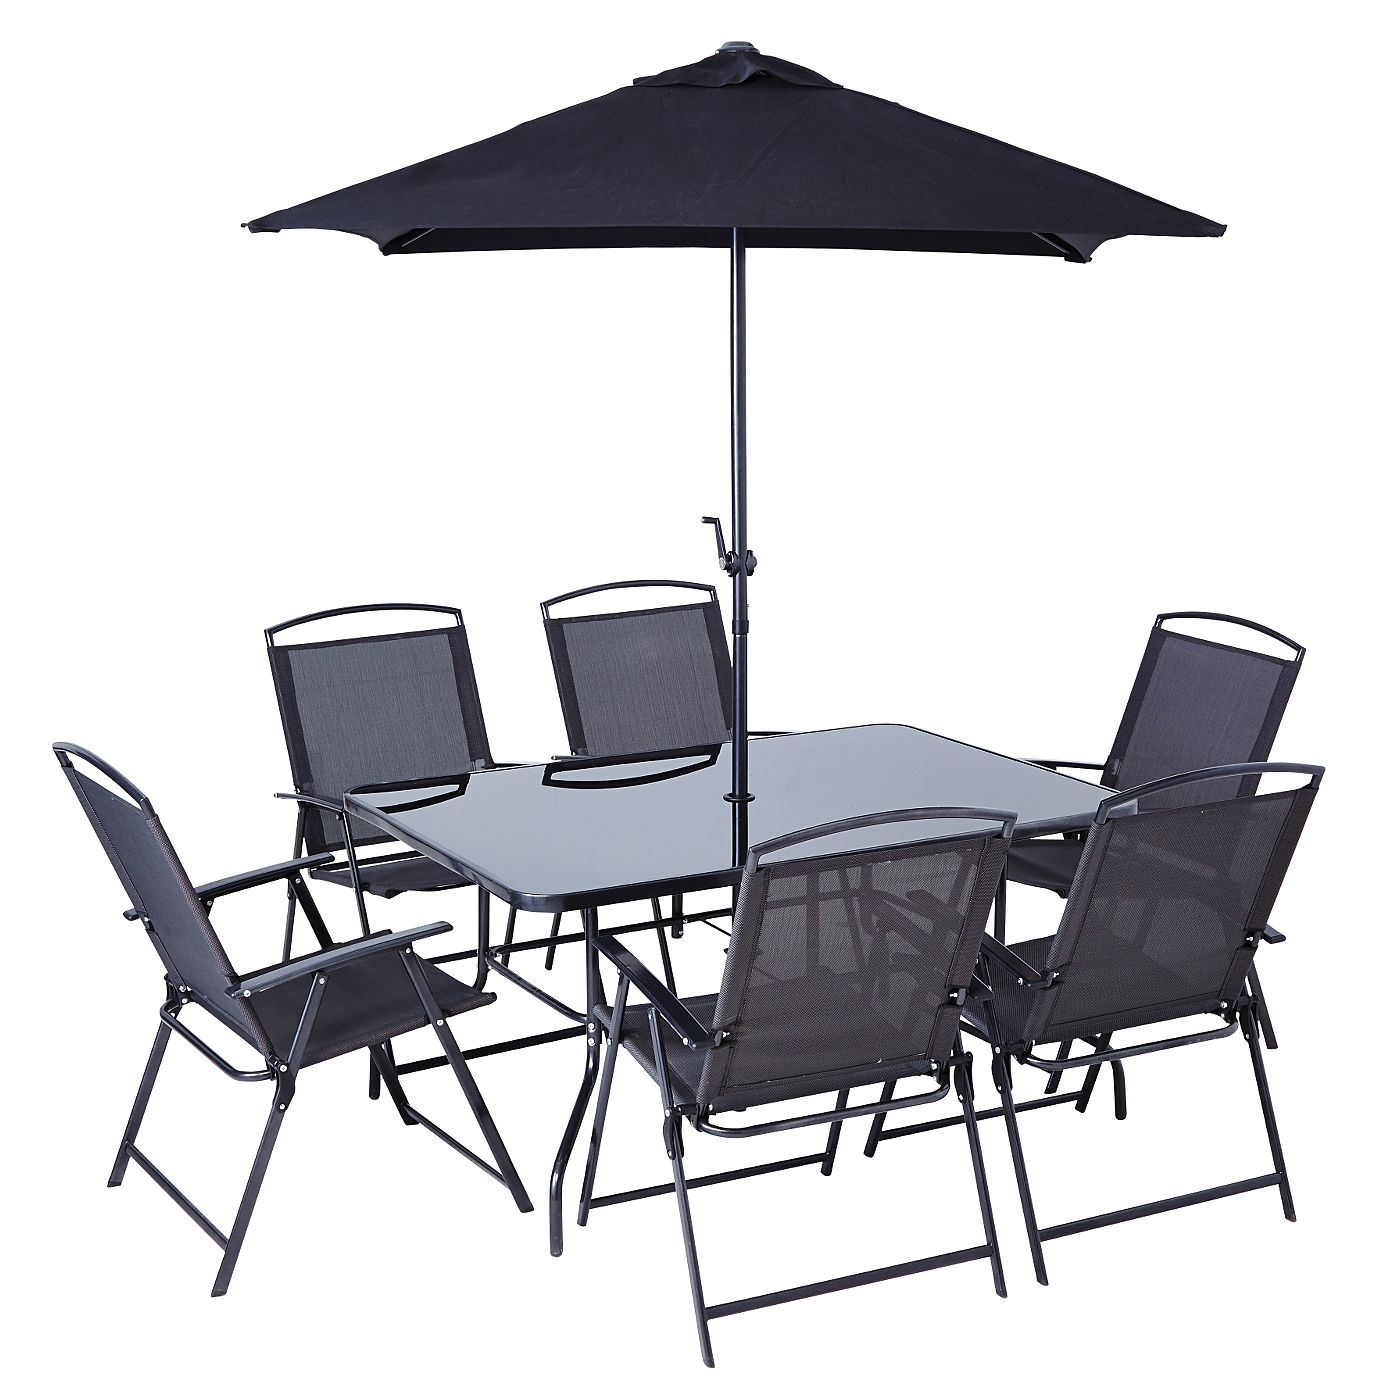 Miami Patio Set   8 Piece   Garden Furniture   ASDA direct. Miami Patio Set   8 Piece   Garden Furniture   ASDA direct   Home